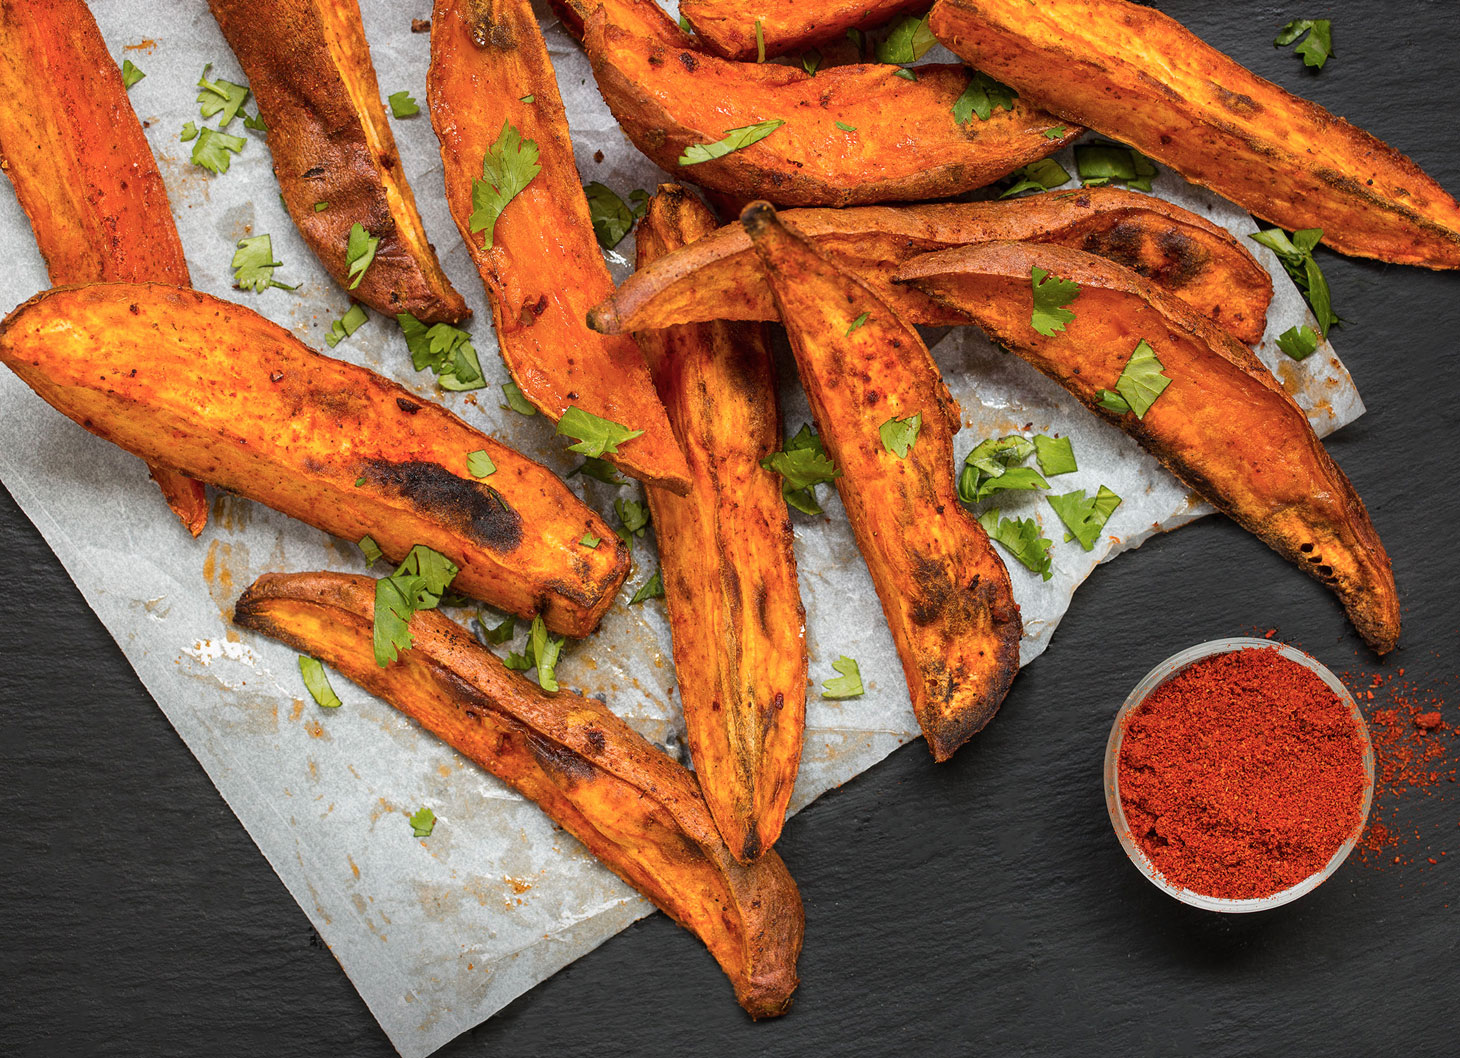 h508-smoky-harissa-roasted-sweet-potato-wedges-1.jpg